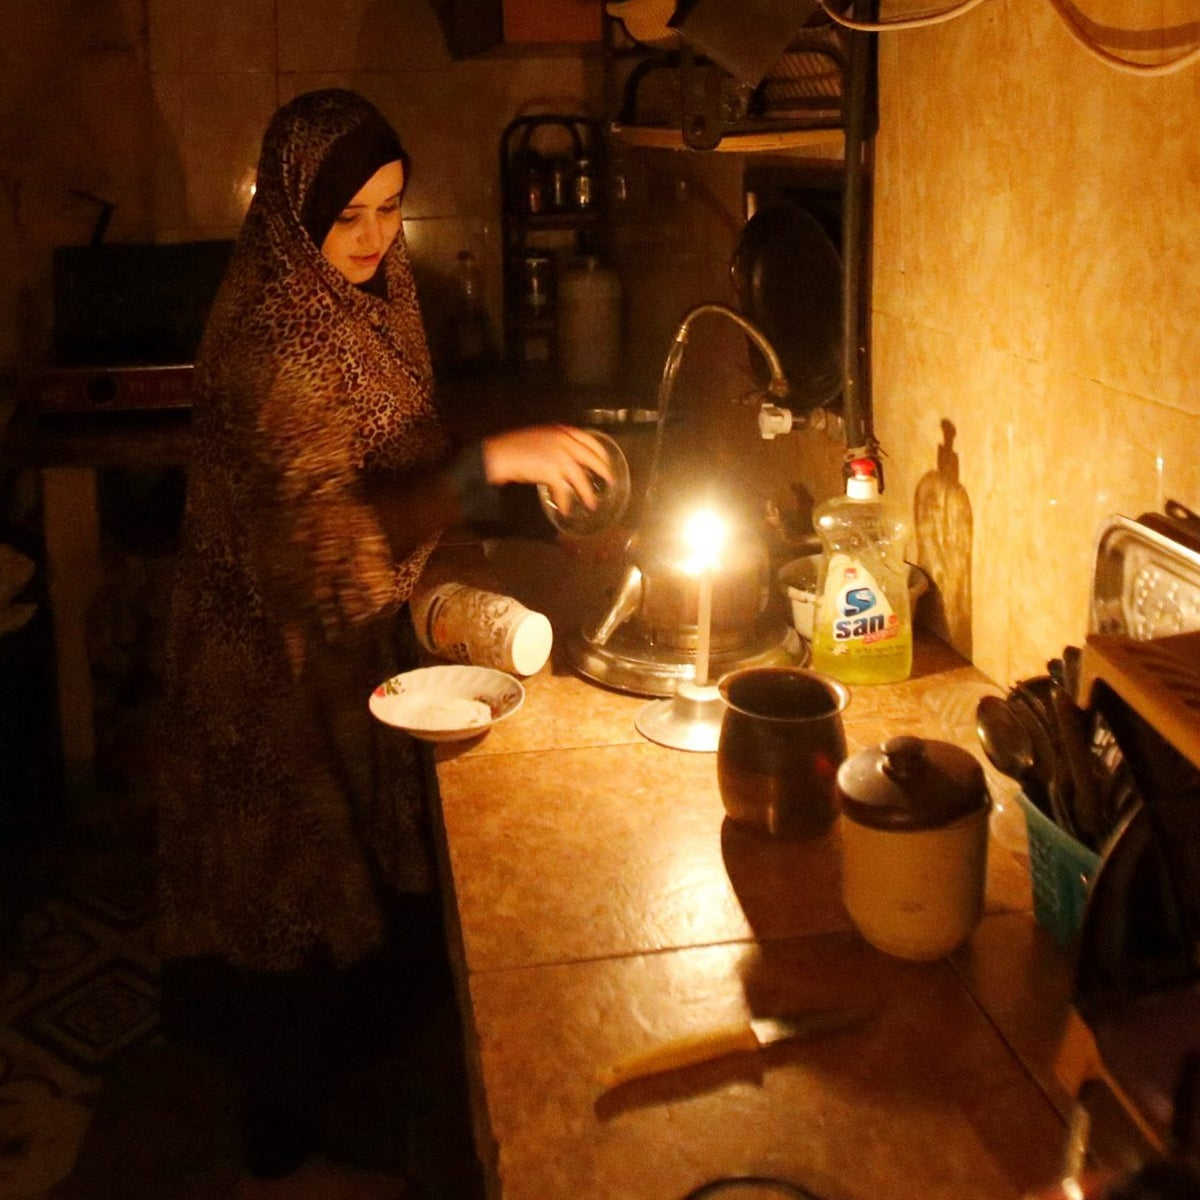 A Palestinian woman washes up in her kitchen during power cut at Shati refugee camp in Gaza City April 25, 2017. Picture taken April 25, 2017. REUTERS/Mohammed Salem